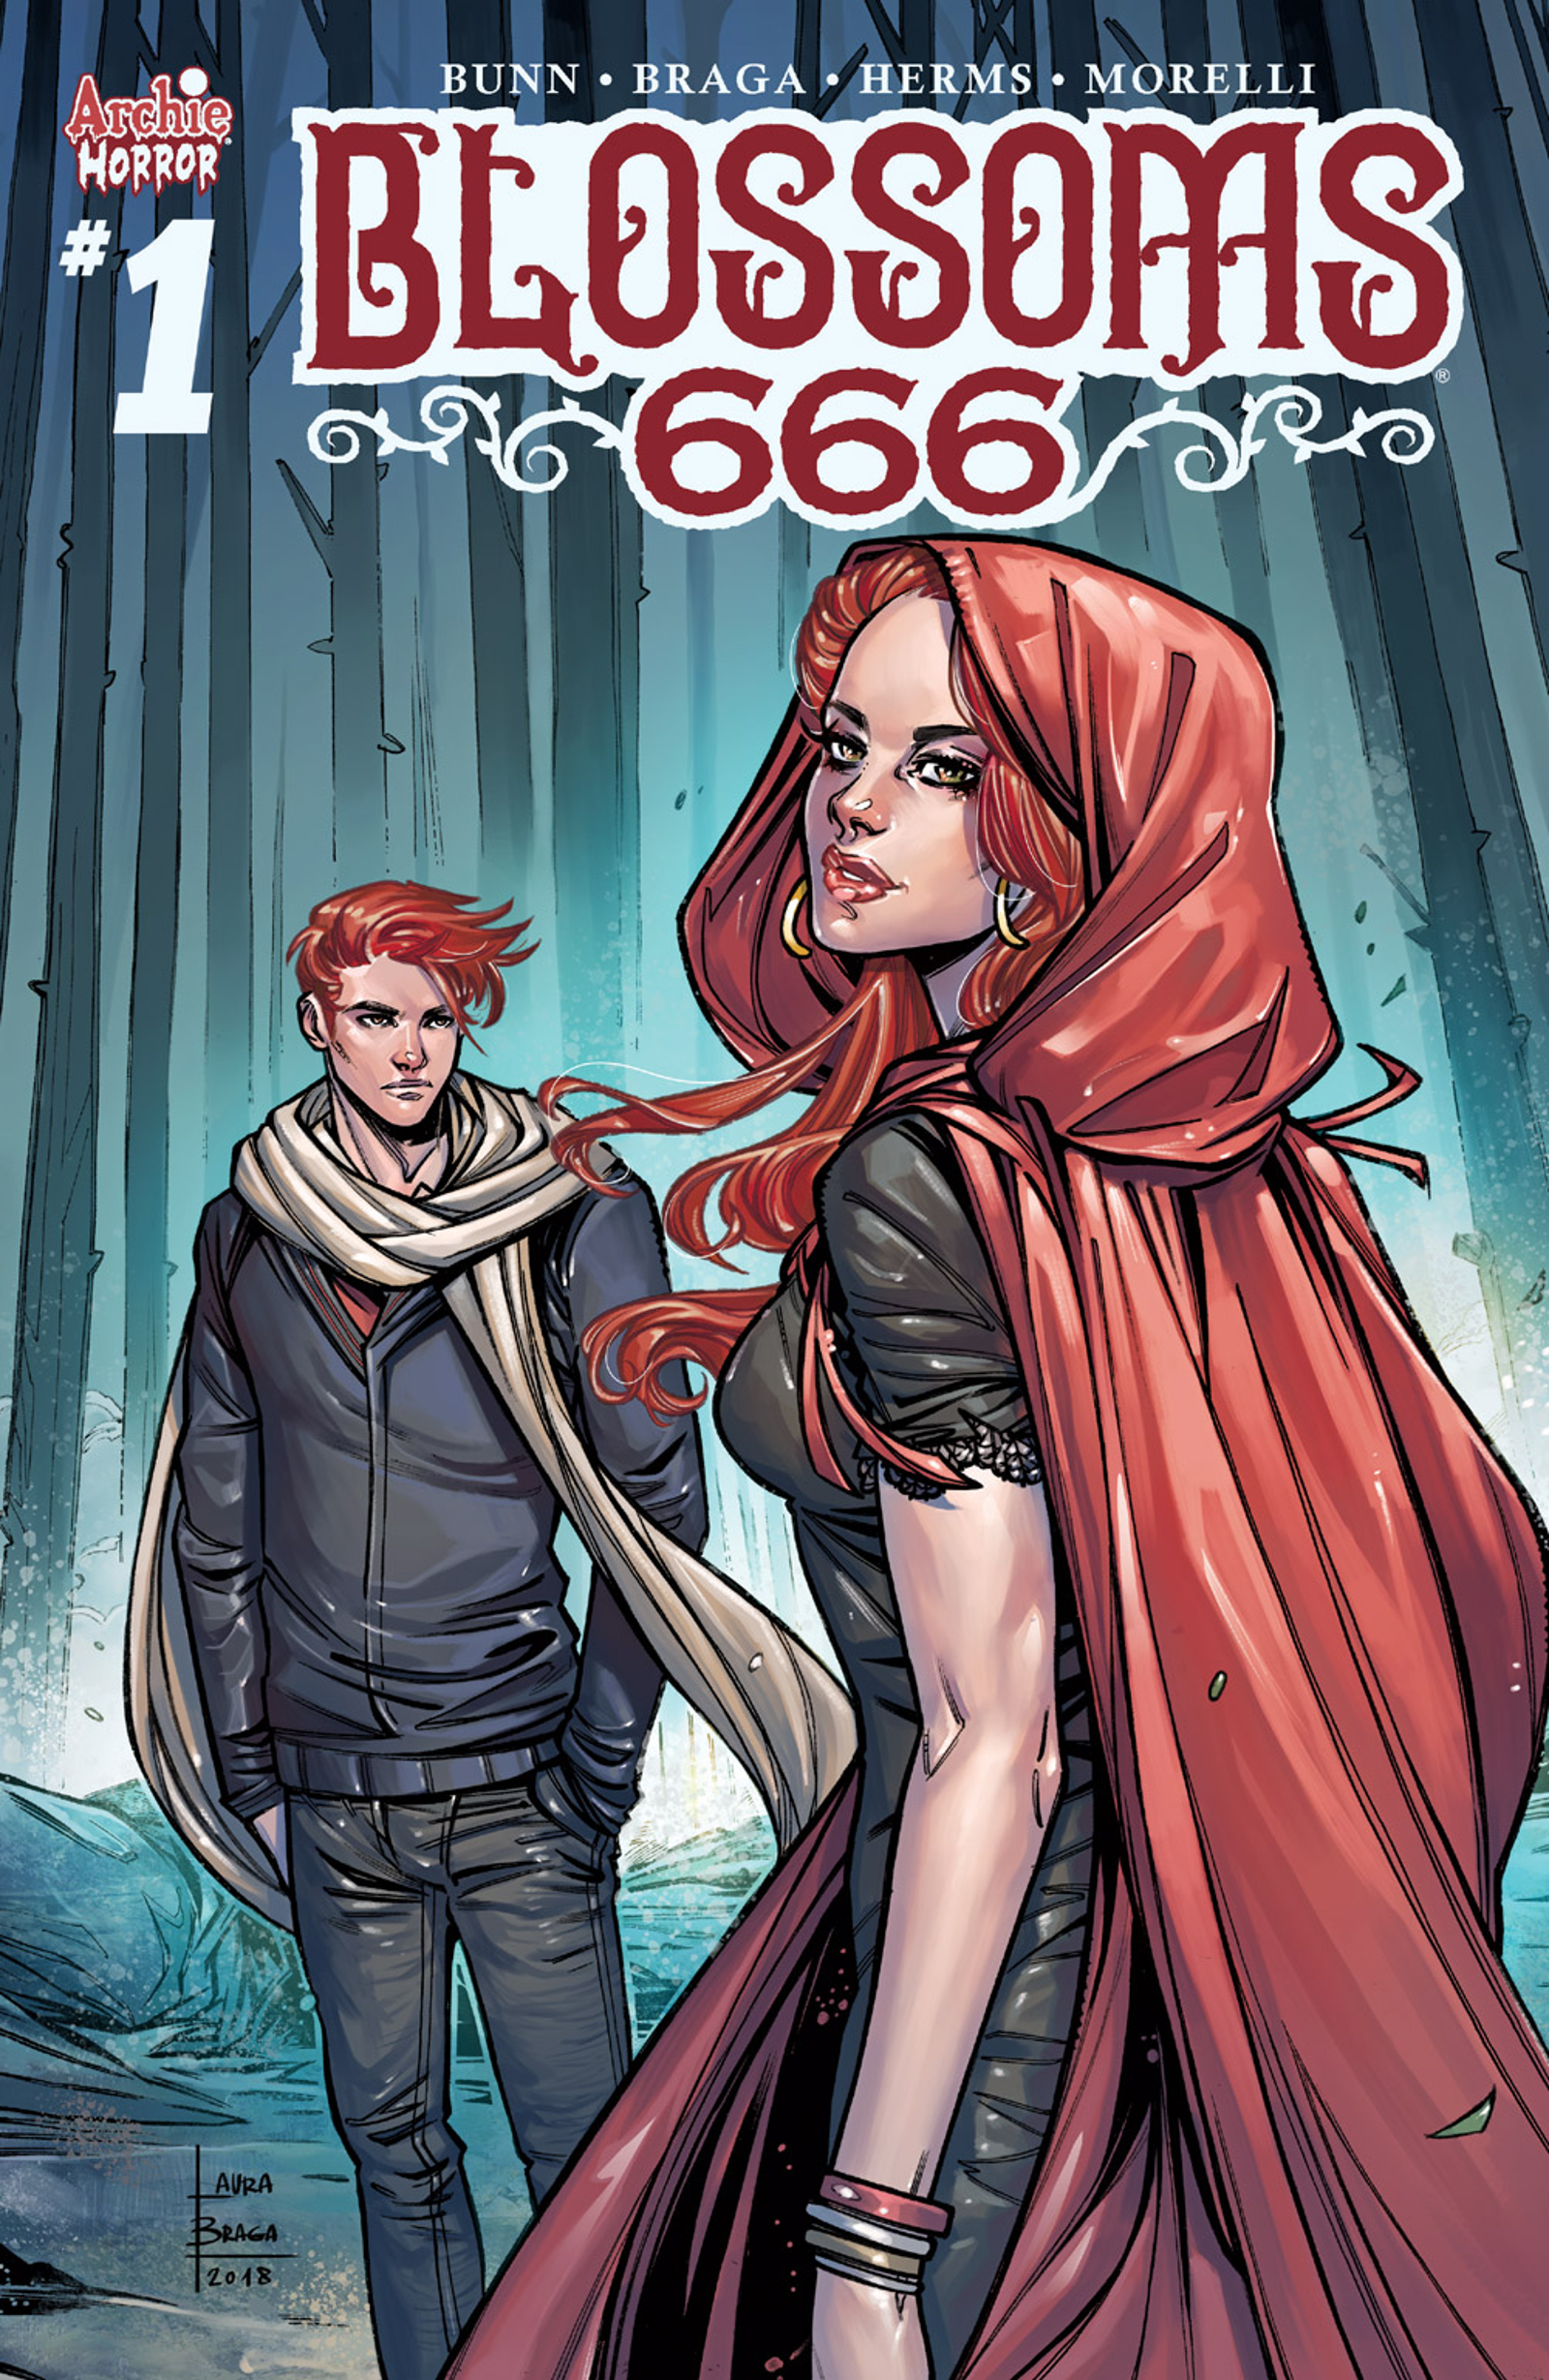 A collection of variant covers for Blossoms 666 #1.